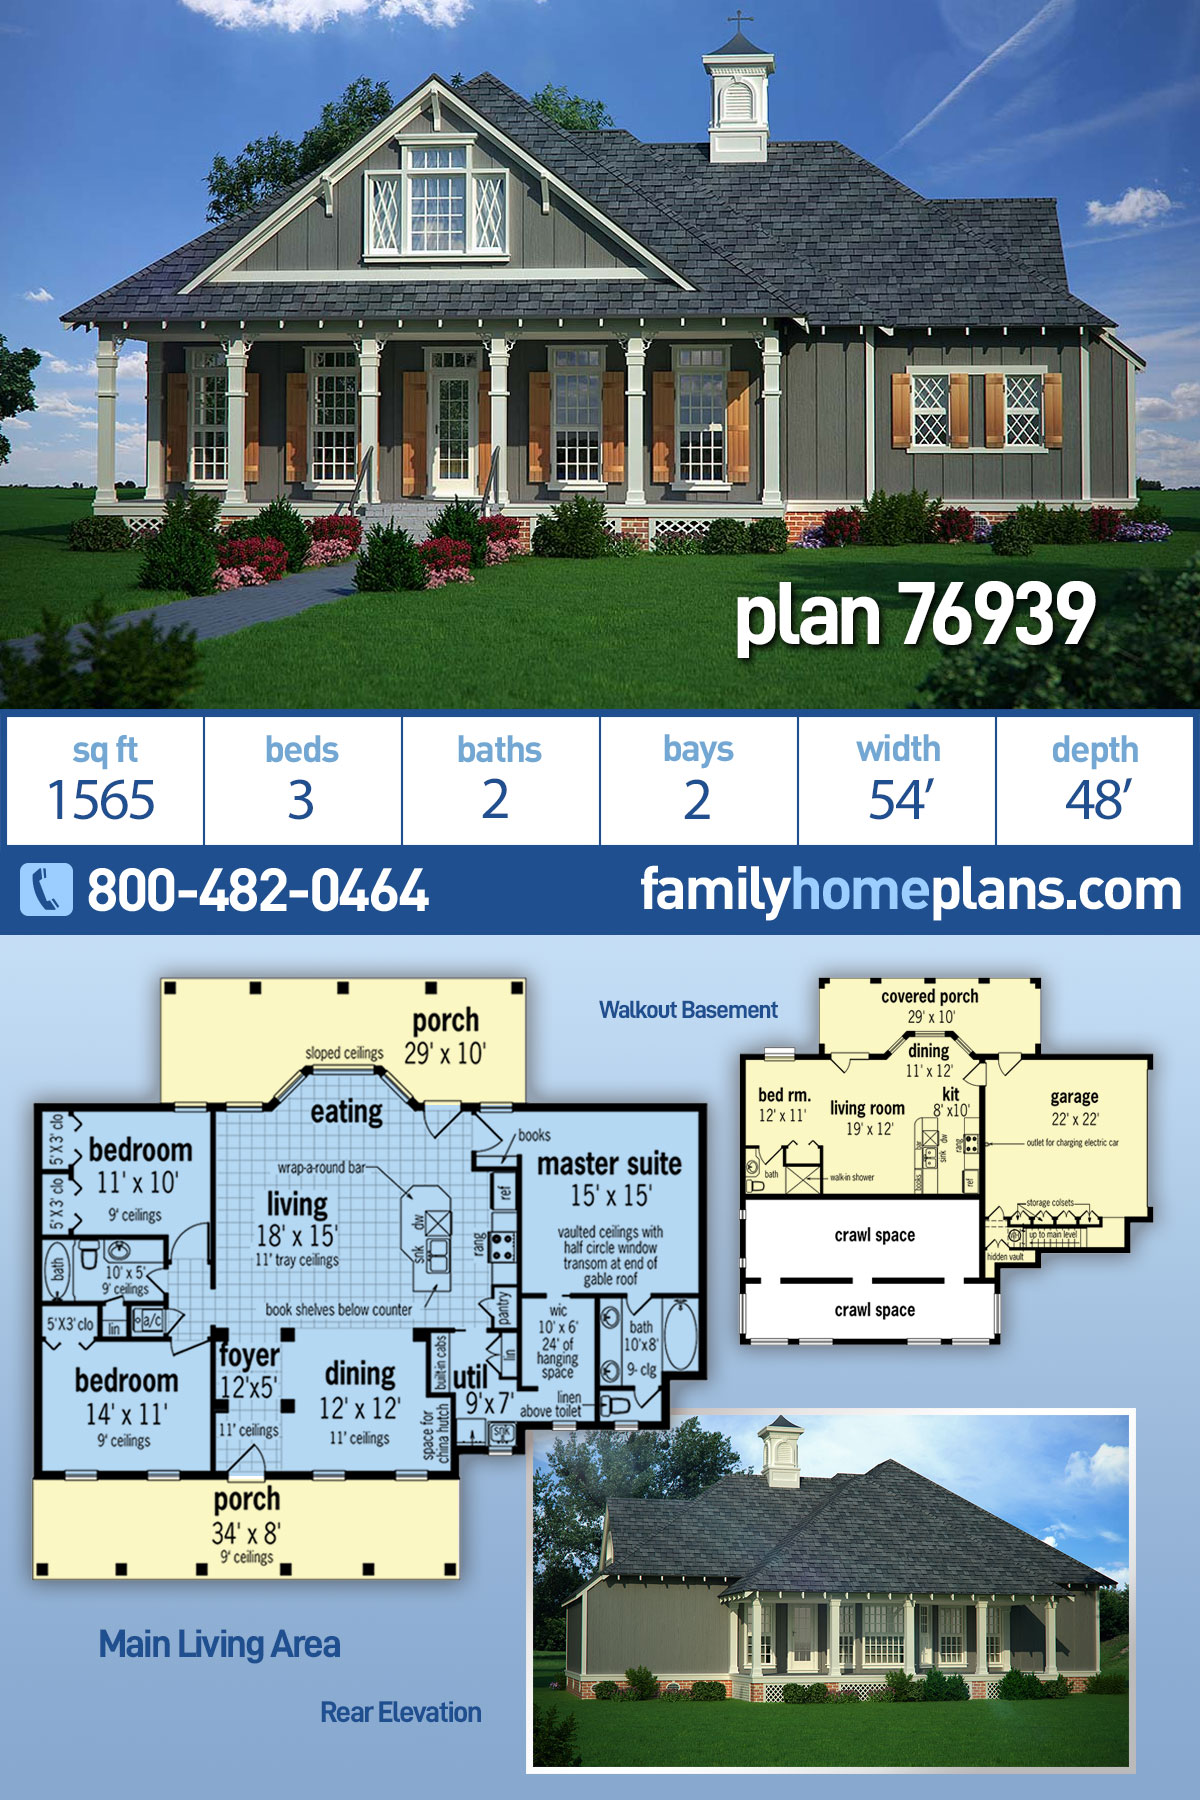 Cottage, Traditional House Plan 76939 with 3 Beds , 2 Baths